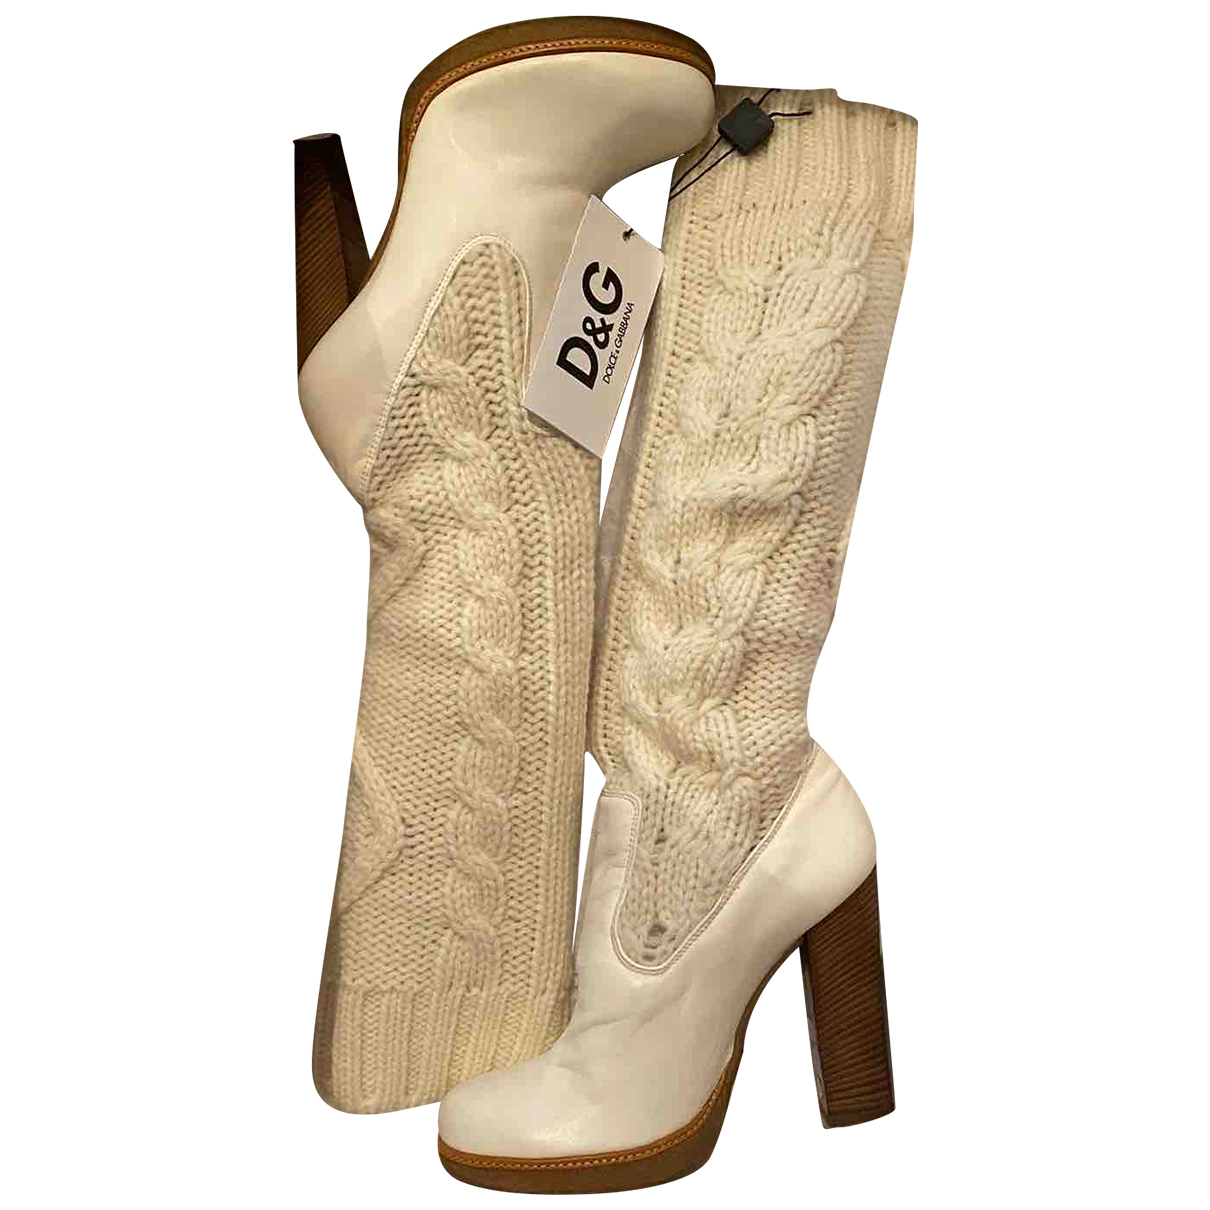 D&g \N White Leather Boots for Women 39 IT